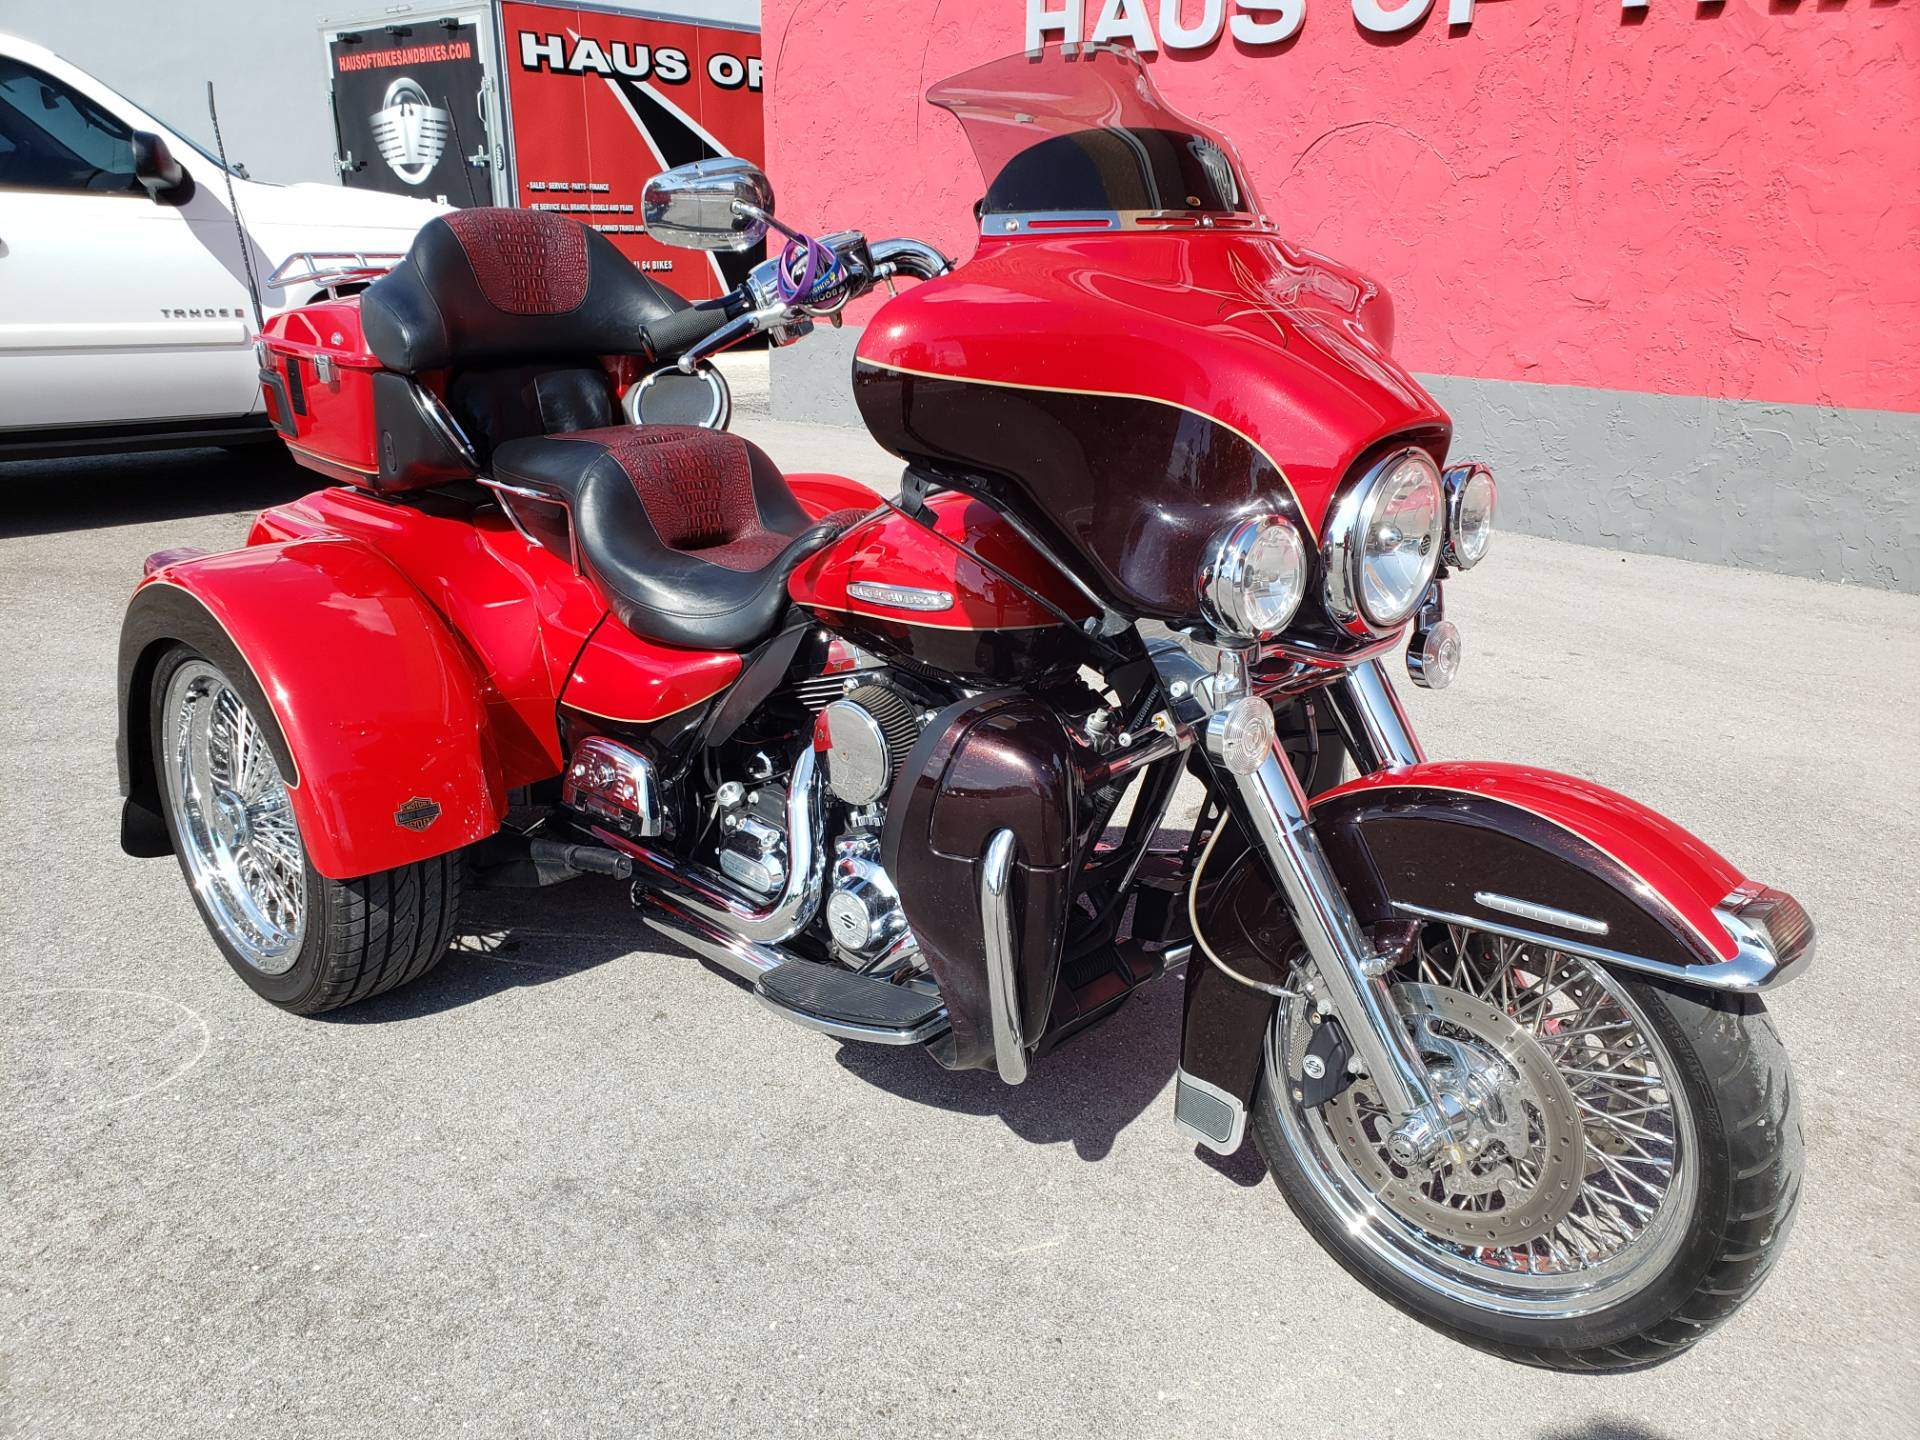 2011 Harley-Davidson ULTRA CLASSIC LIMITED in Fort Myers, Florida - Photo 2